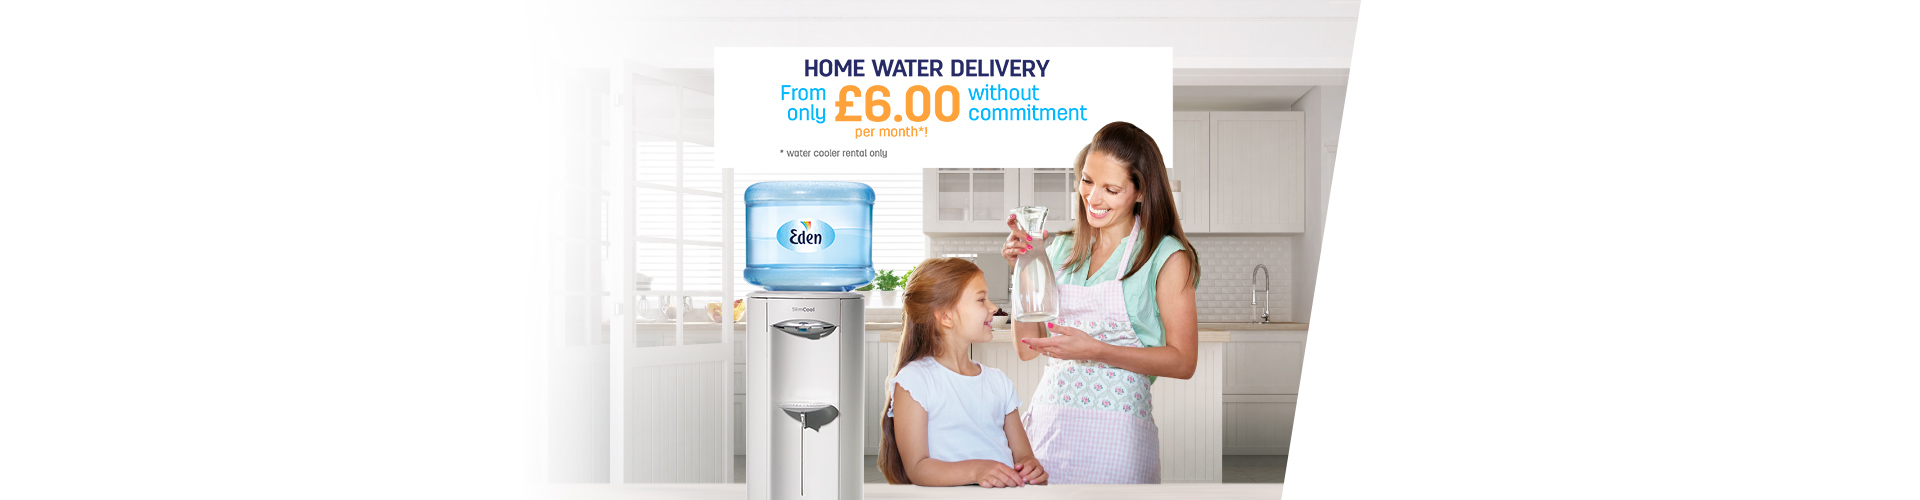 Home Water Delivery